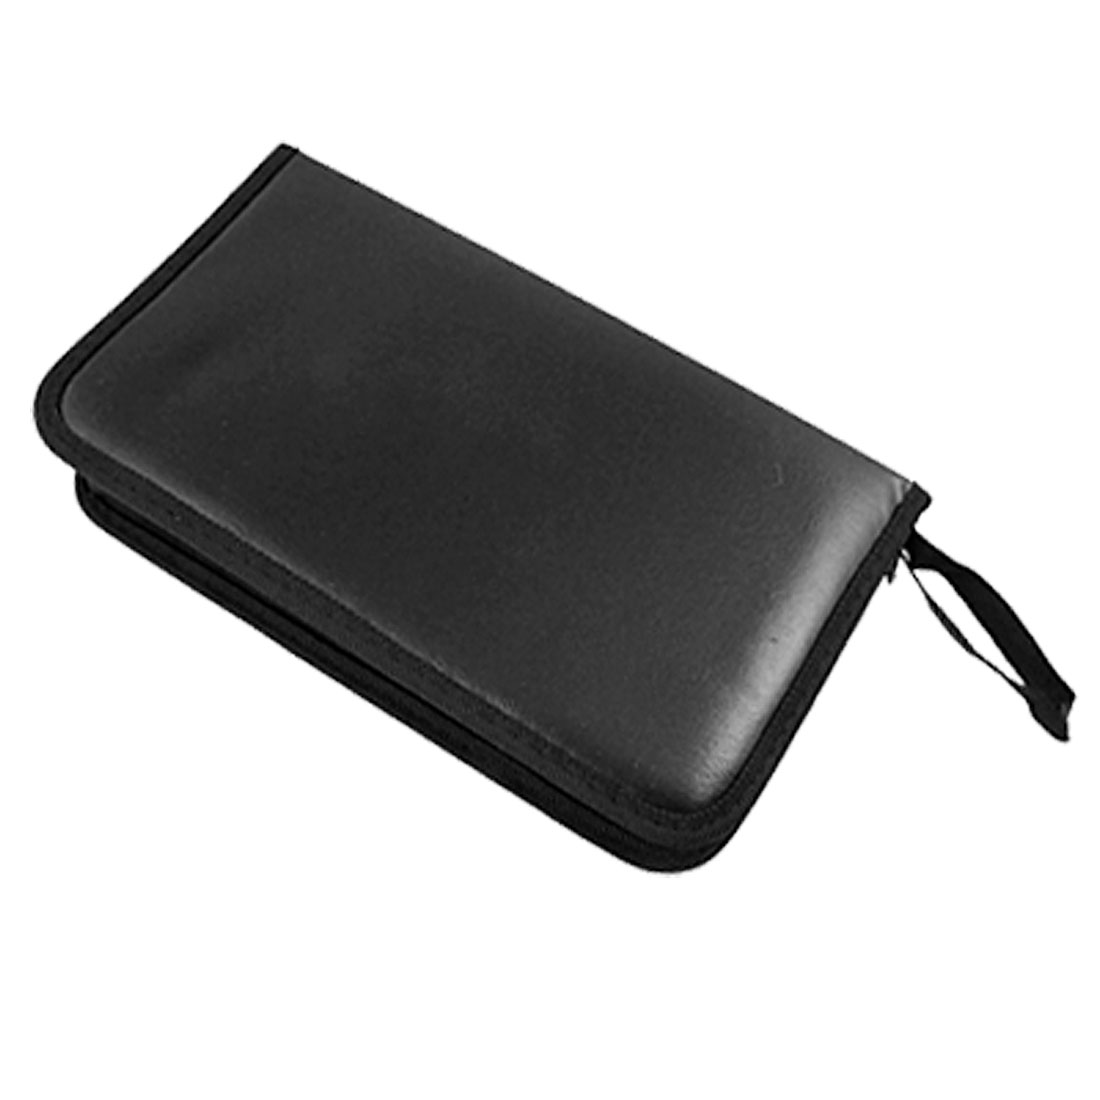 80 VCD DVD CD Faux Leather Carrying Case Storage Holder Organizer Black